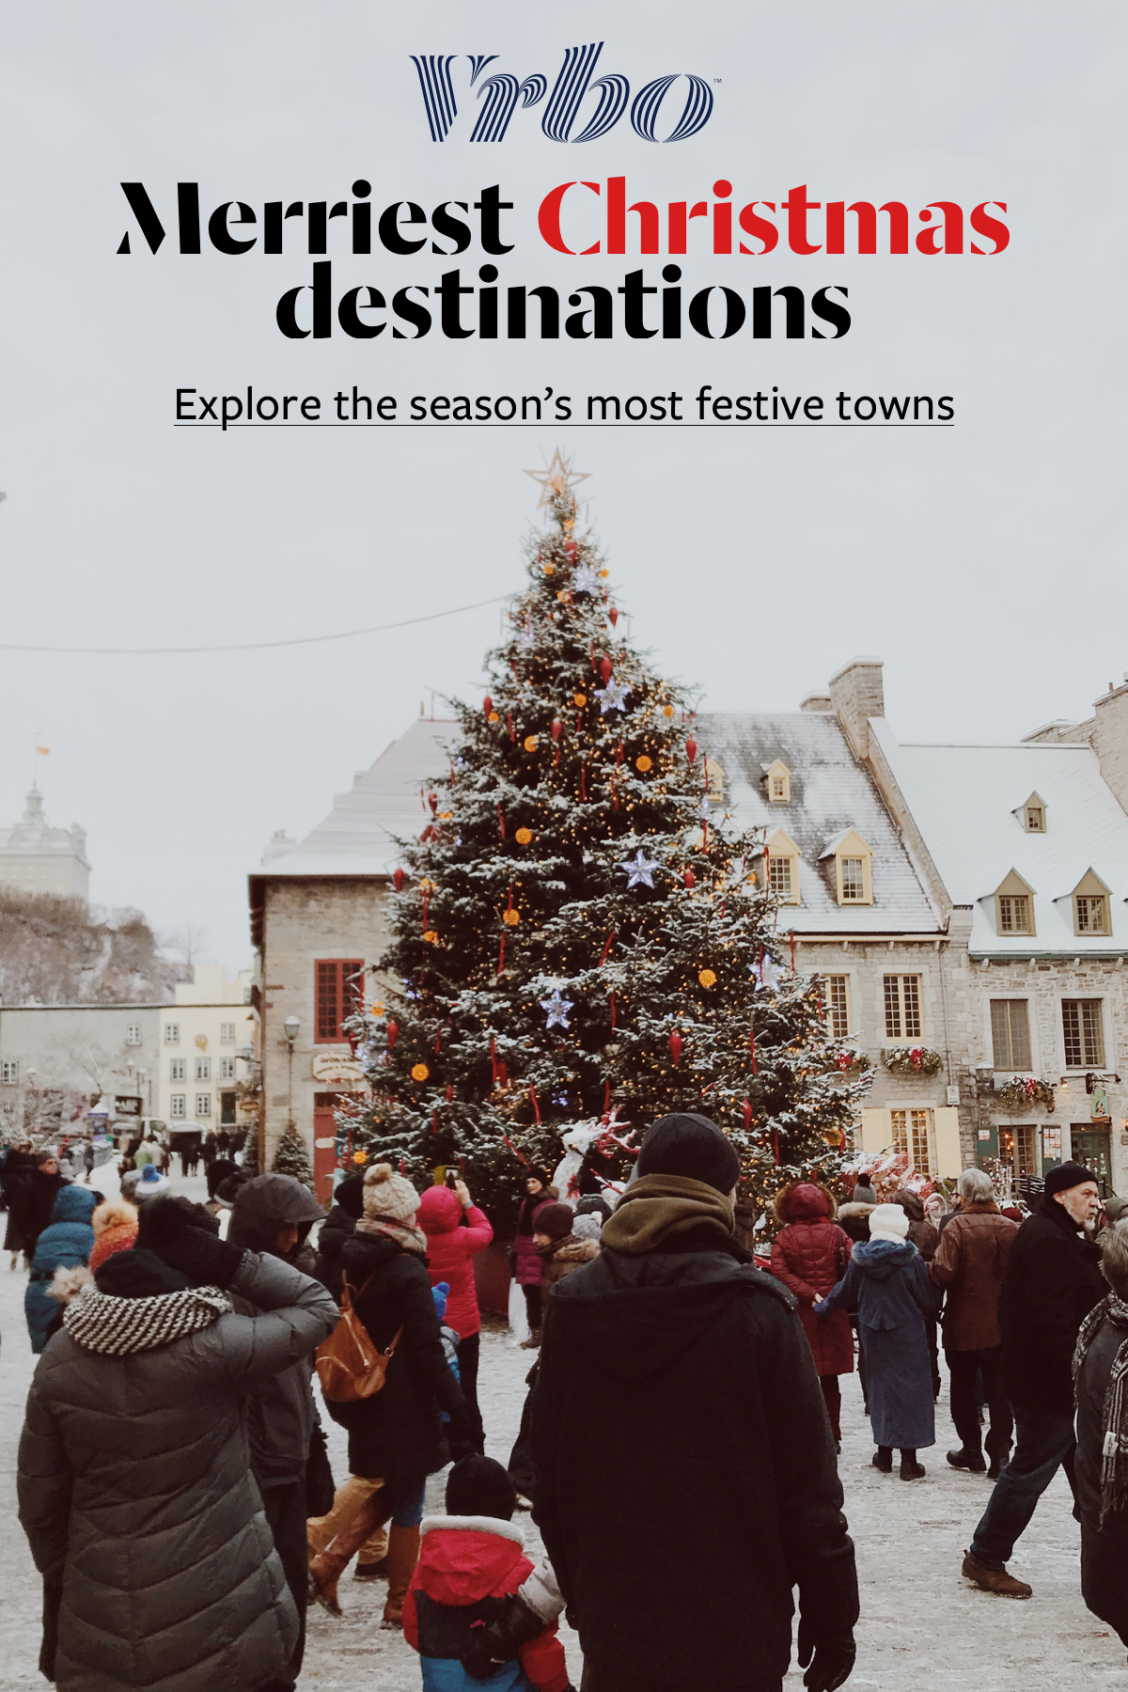 The Perfect Christmas Town In The Usa Awaits Start Planning Your Family Holiday Getaway And Ch In 2020 Christmas Destinations Christmas Travel Winter Family Vacations